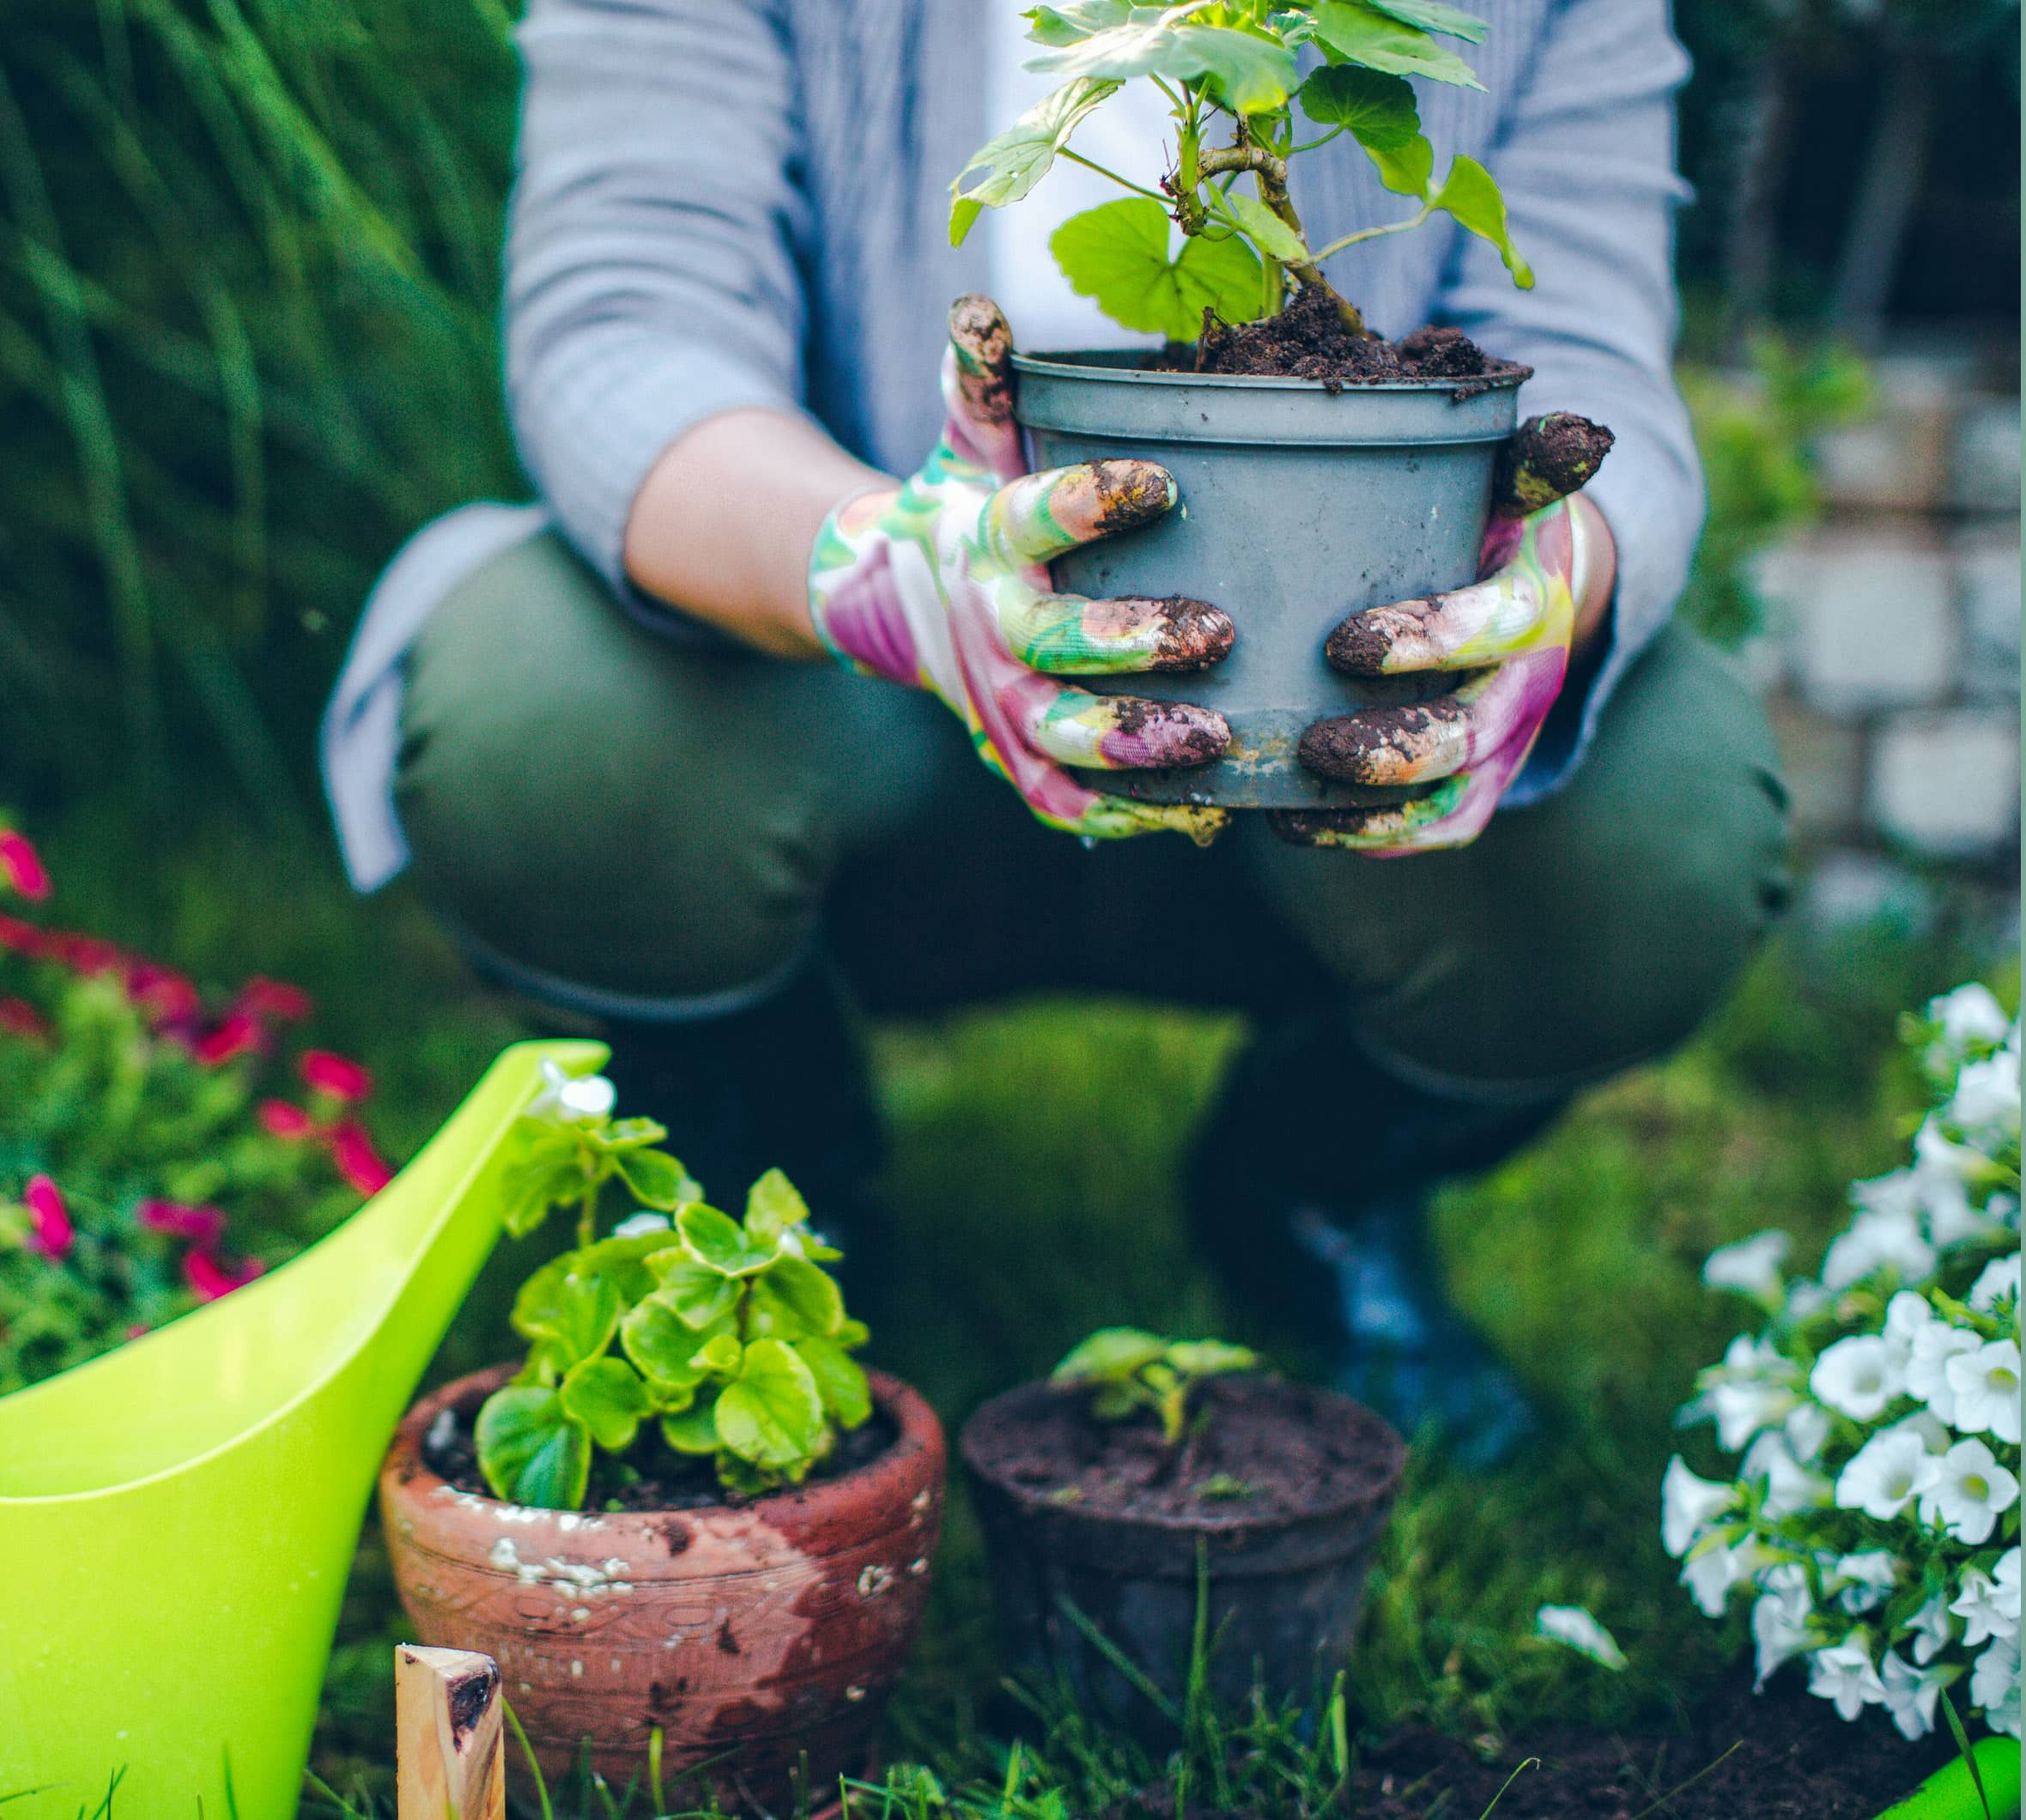 Feed The Soul: In Chaotic Times, Gardening Becomes Therapy